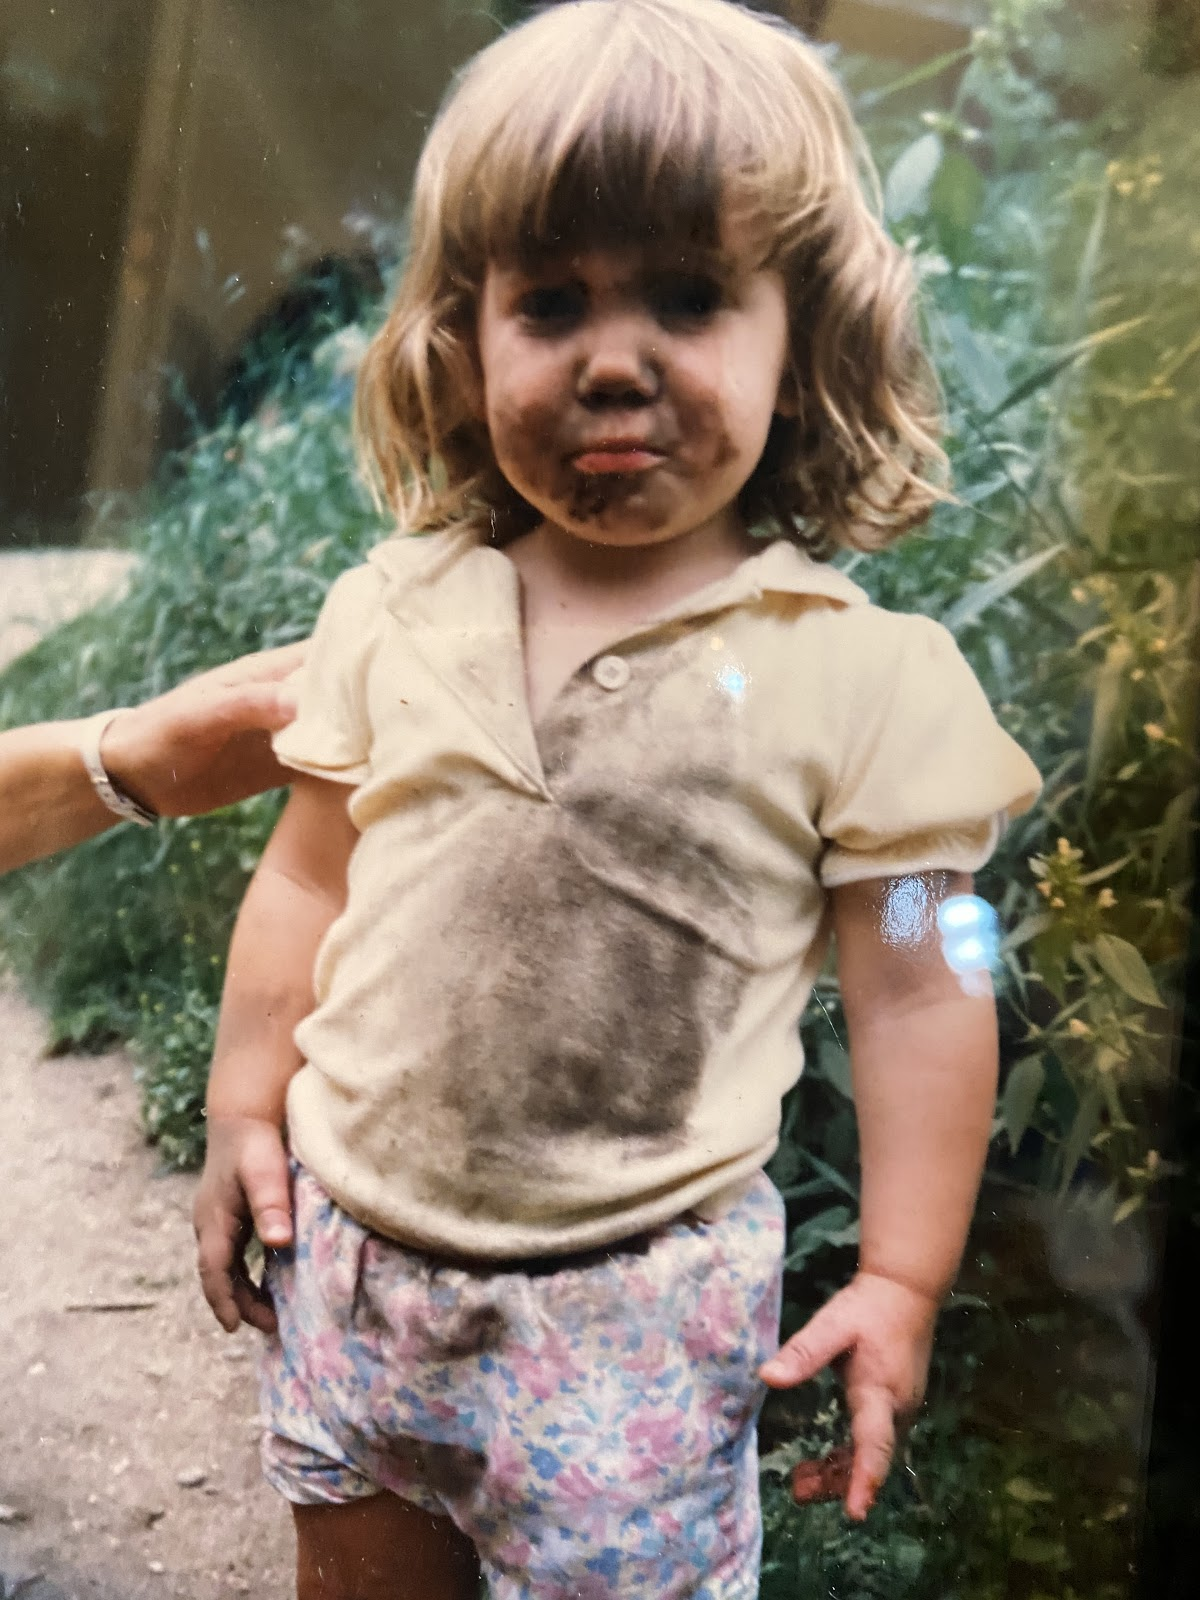 A child with mud on her face and clothes.